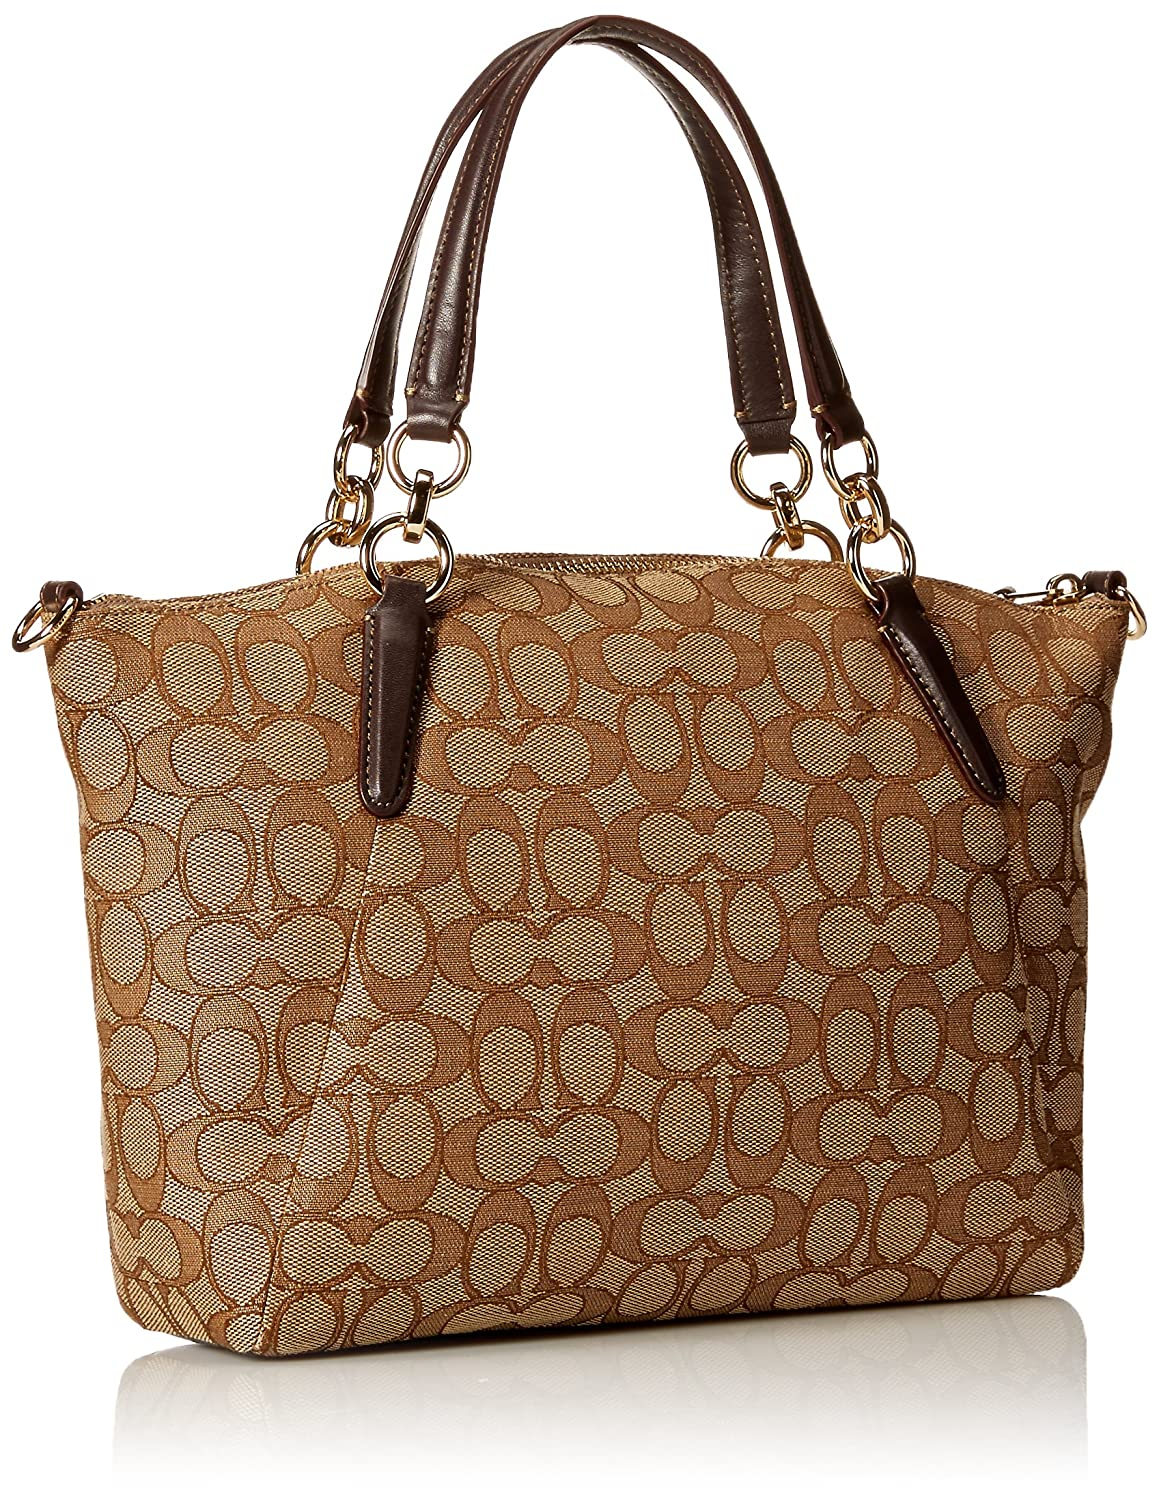 11cff45f9f45 Coach Women s Canvas Outline Signature Kelsey Handbag with Removable  Cross-body Strap  Amazon.in  Shoes   Handbags